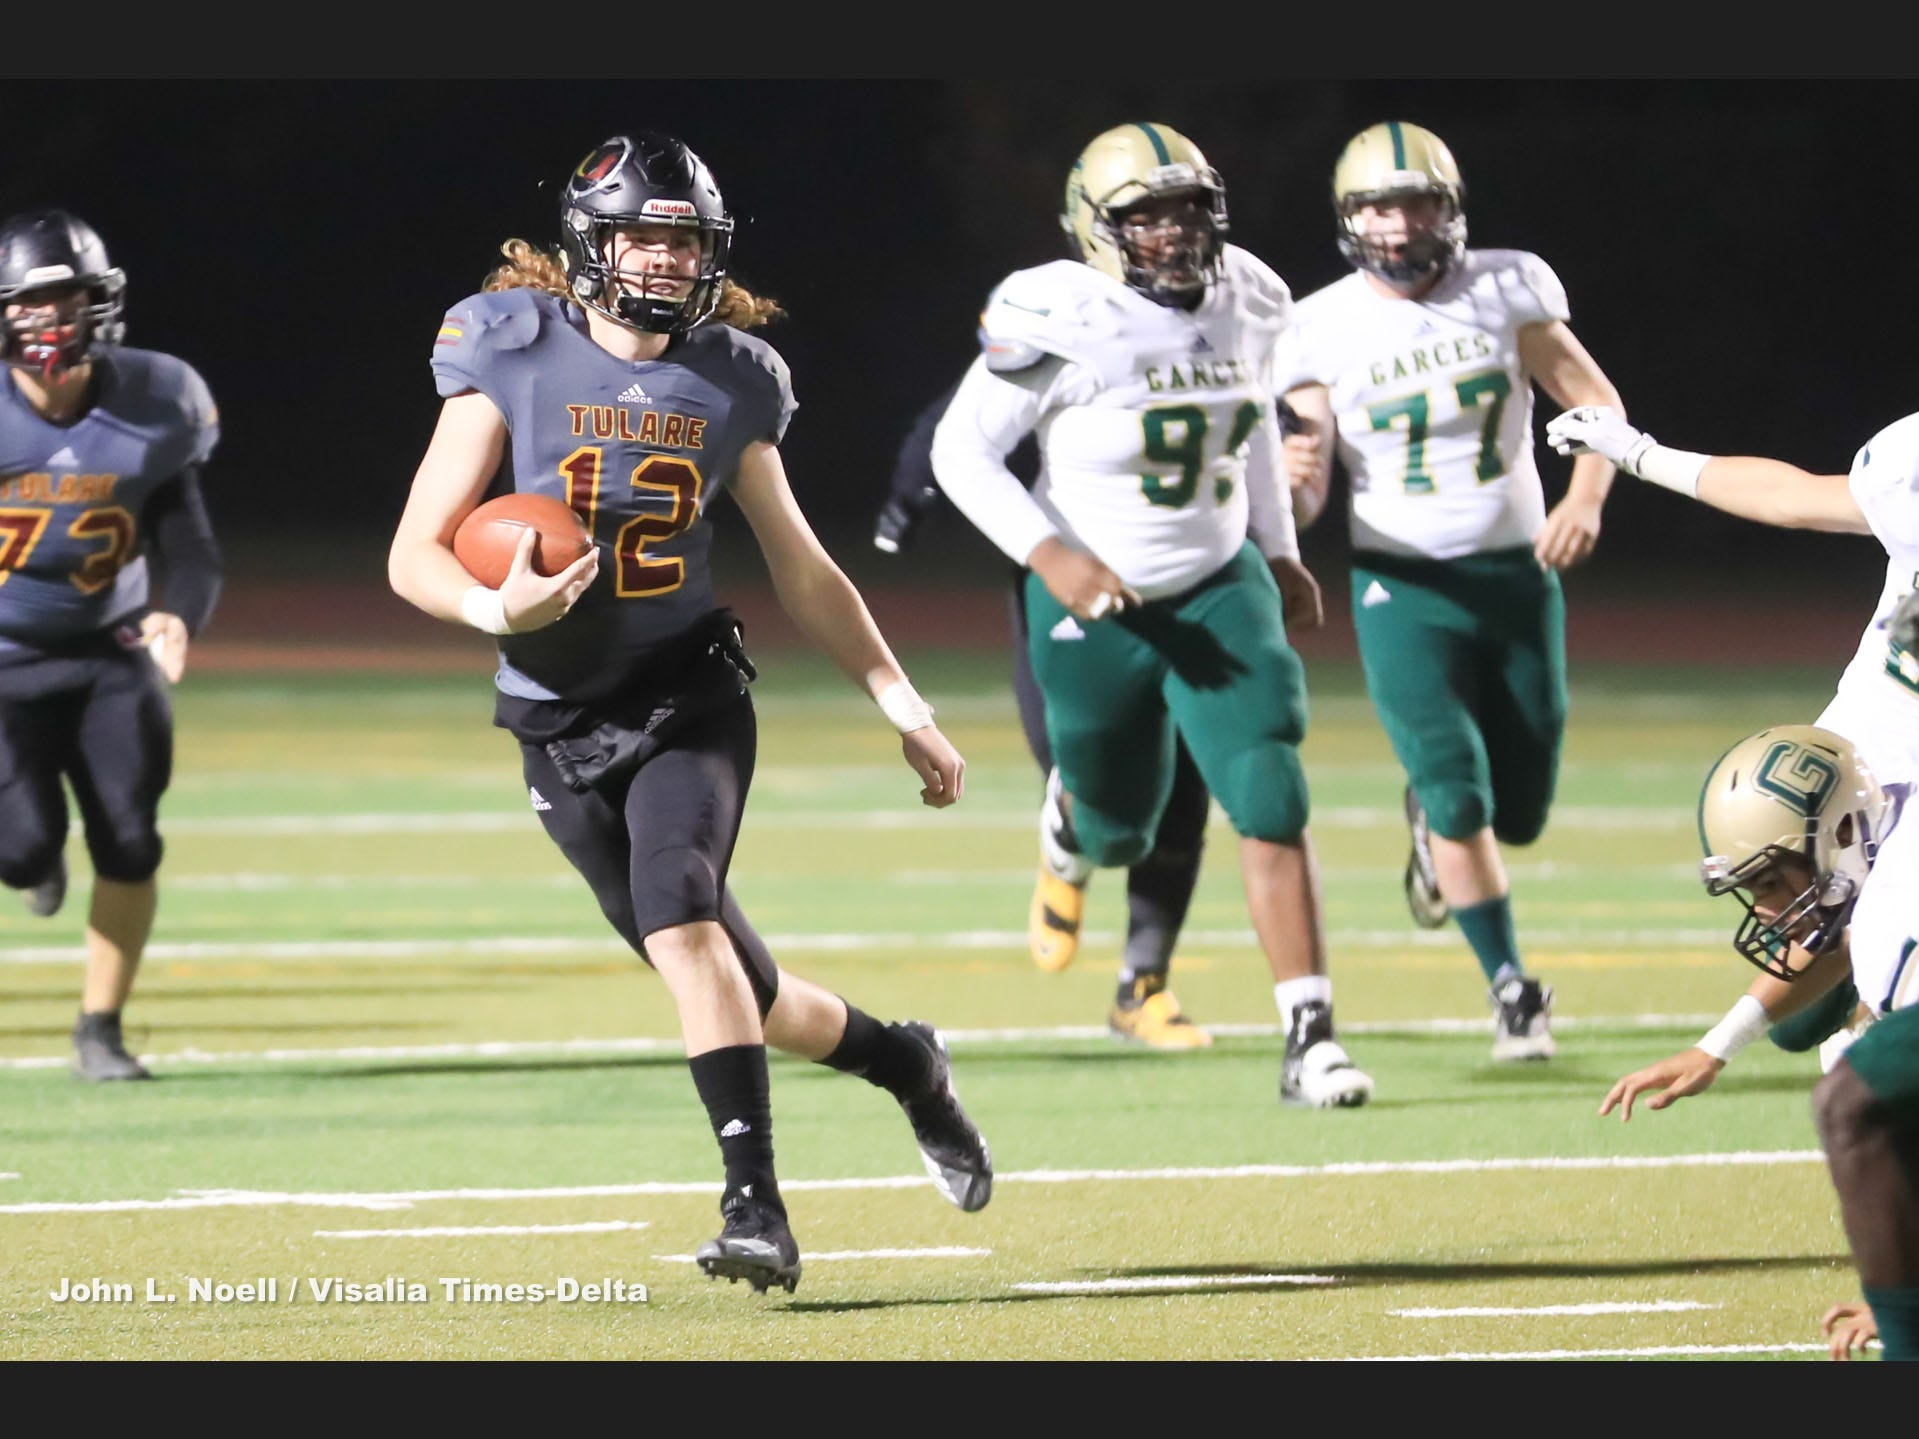 Tulare Union's Nathan Lamb (12) rushes in open field against Garces Memorial in a Central Section Division II quarterfinal high school football game at Bob Mathias Stadium on Nov 9th, 2018.